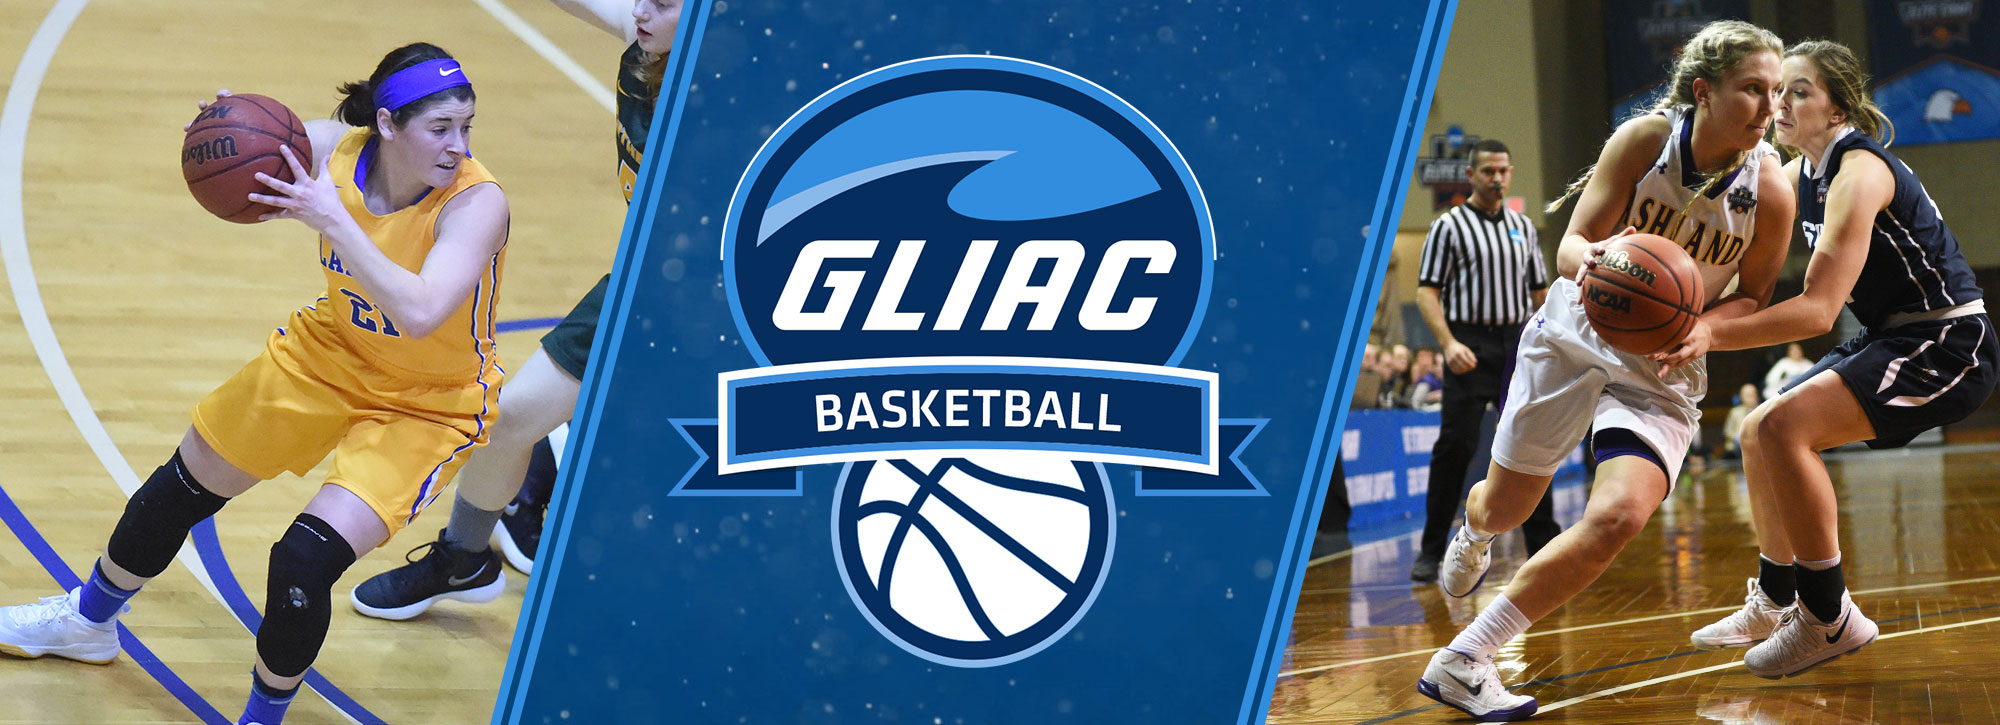 Ashland's Johnson, Lake Superior State's Radtke Collect GLIAC Women's Hoops Weekly Honors